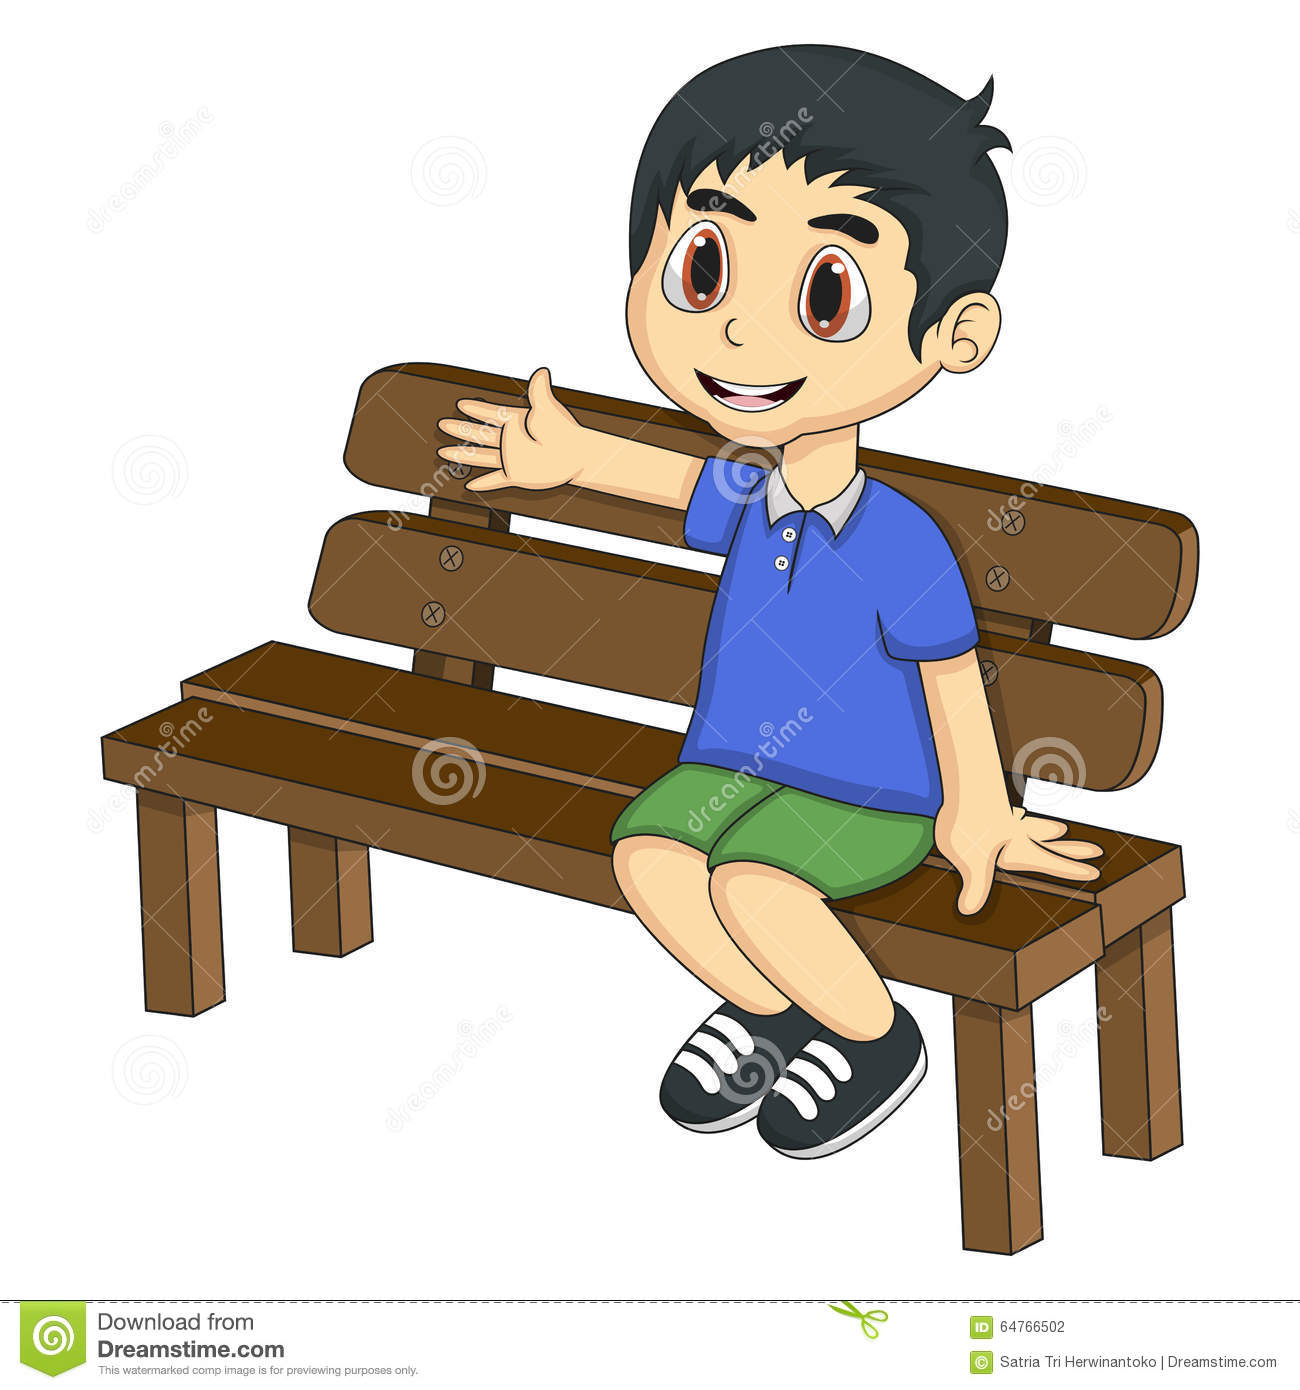 kid pointing   clipart   cliparts